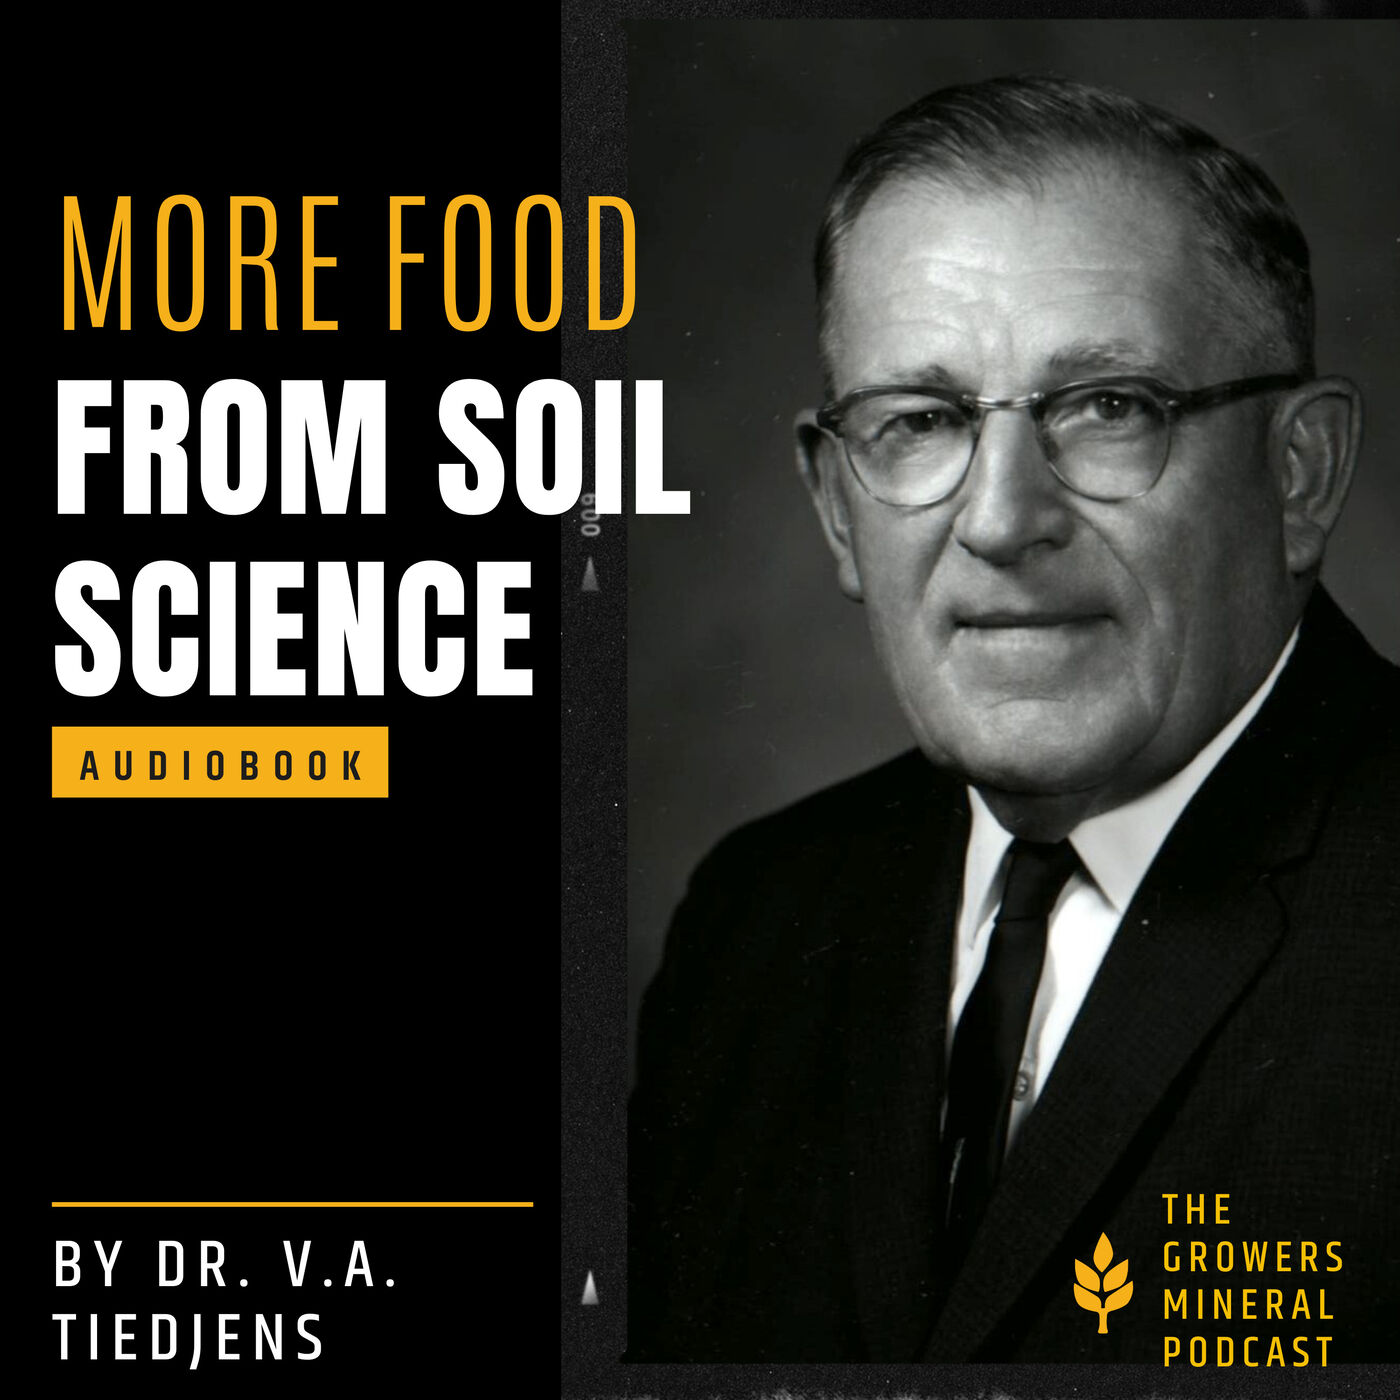 More Food from Soil Science Audiobook Ch. 9 -  Drought and Rainfall Control Yields But There Is Much Man Can Do to Offset Their Hazards